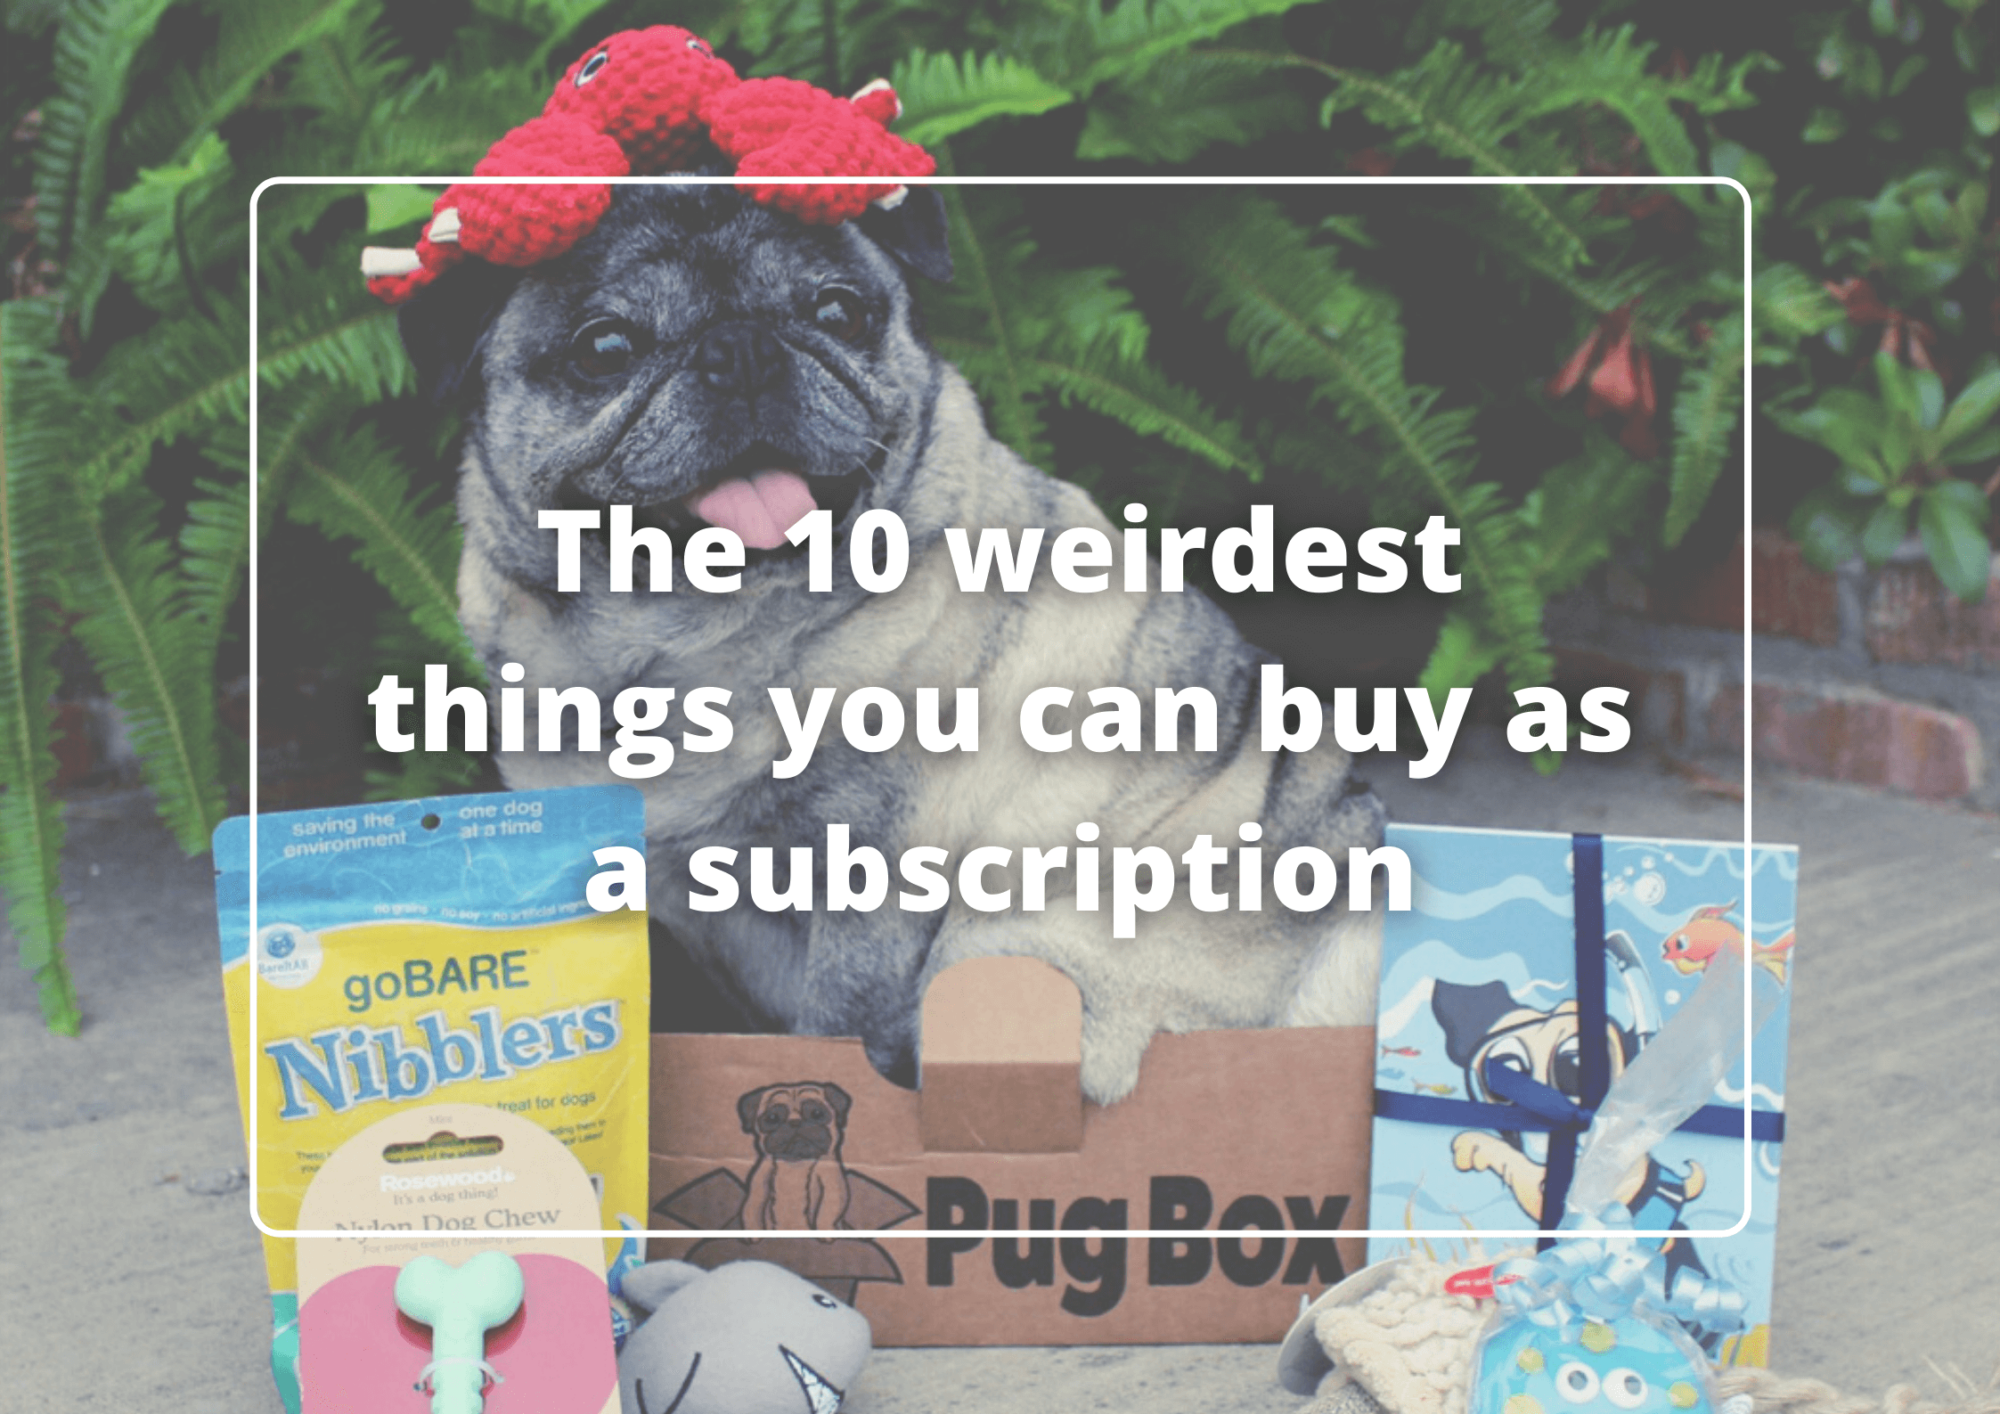 The 10 weirdest things you can buy as a subscription